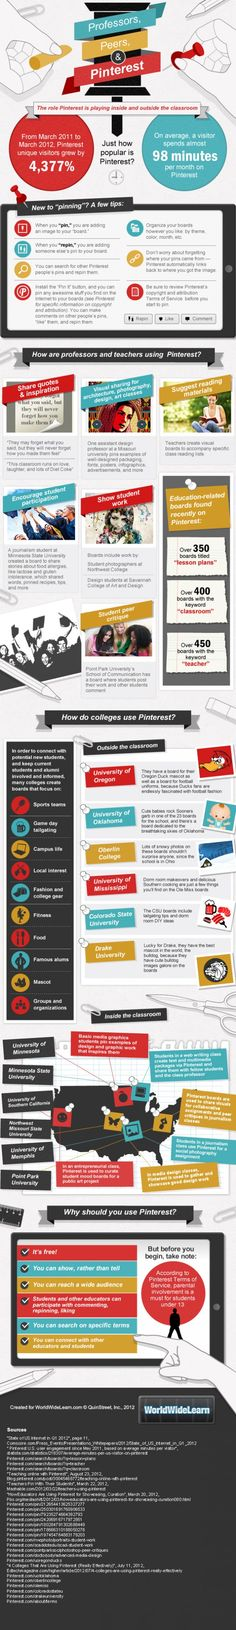 How #Pinterest can be used in the classrooms #Infographic